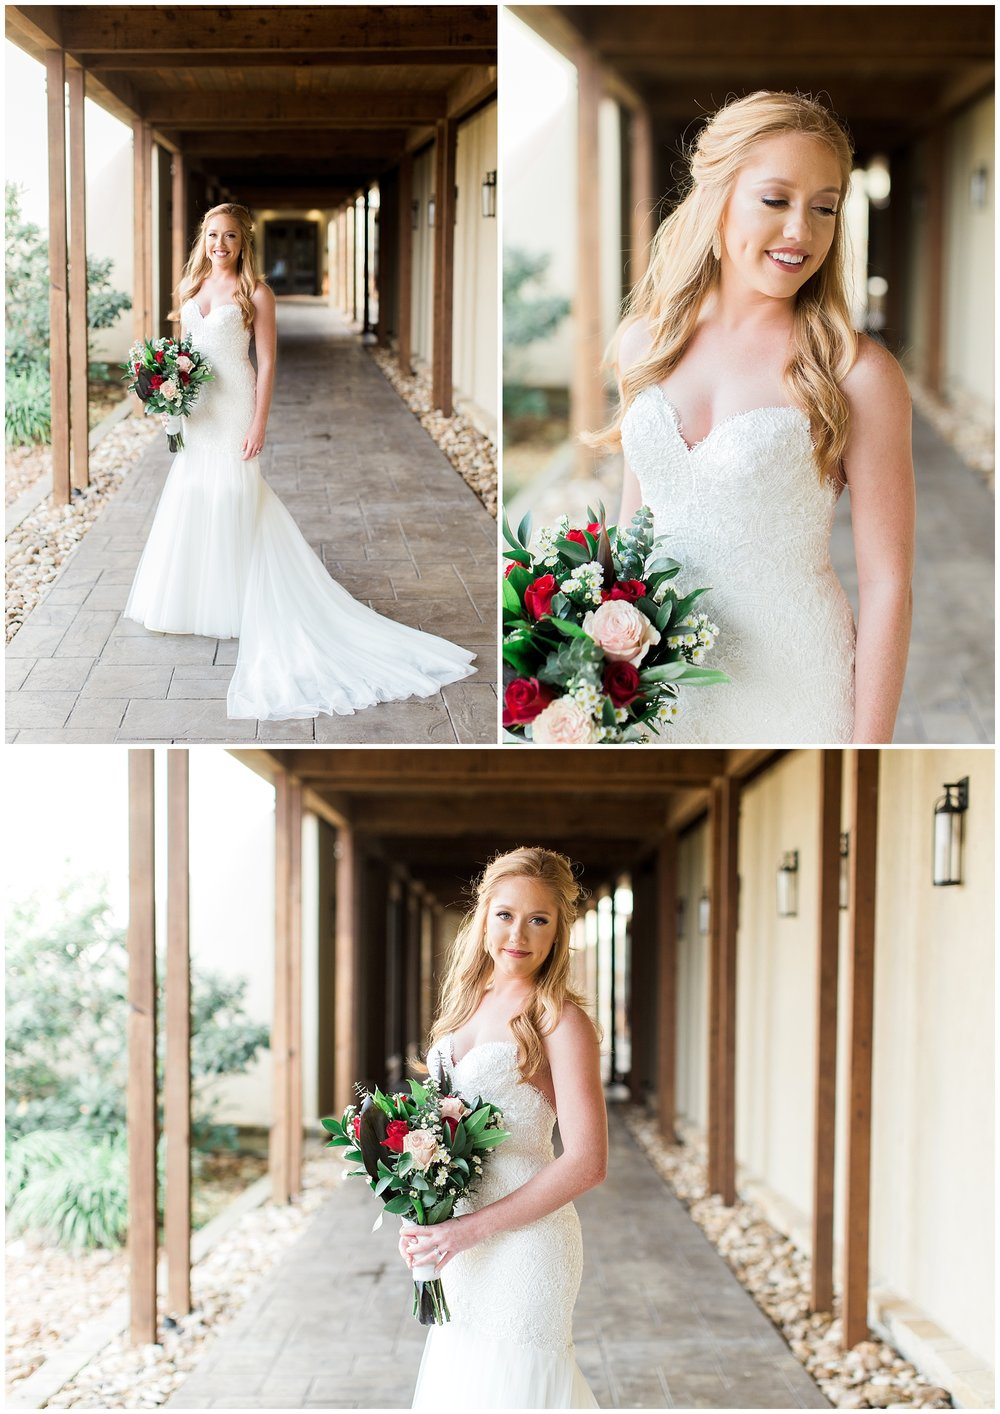 TraditionsClubBridalSession_0001.jpg